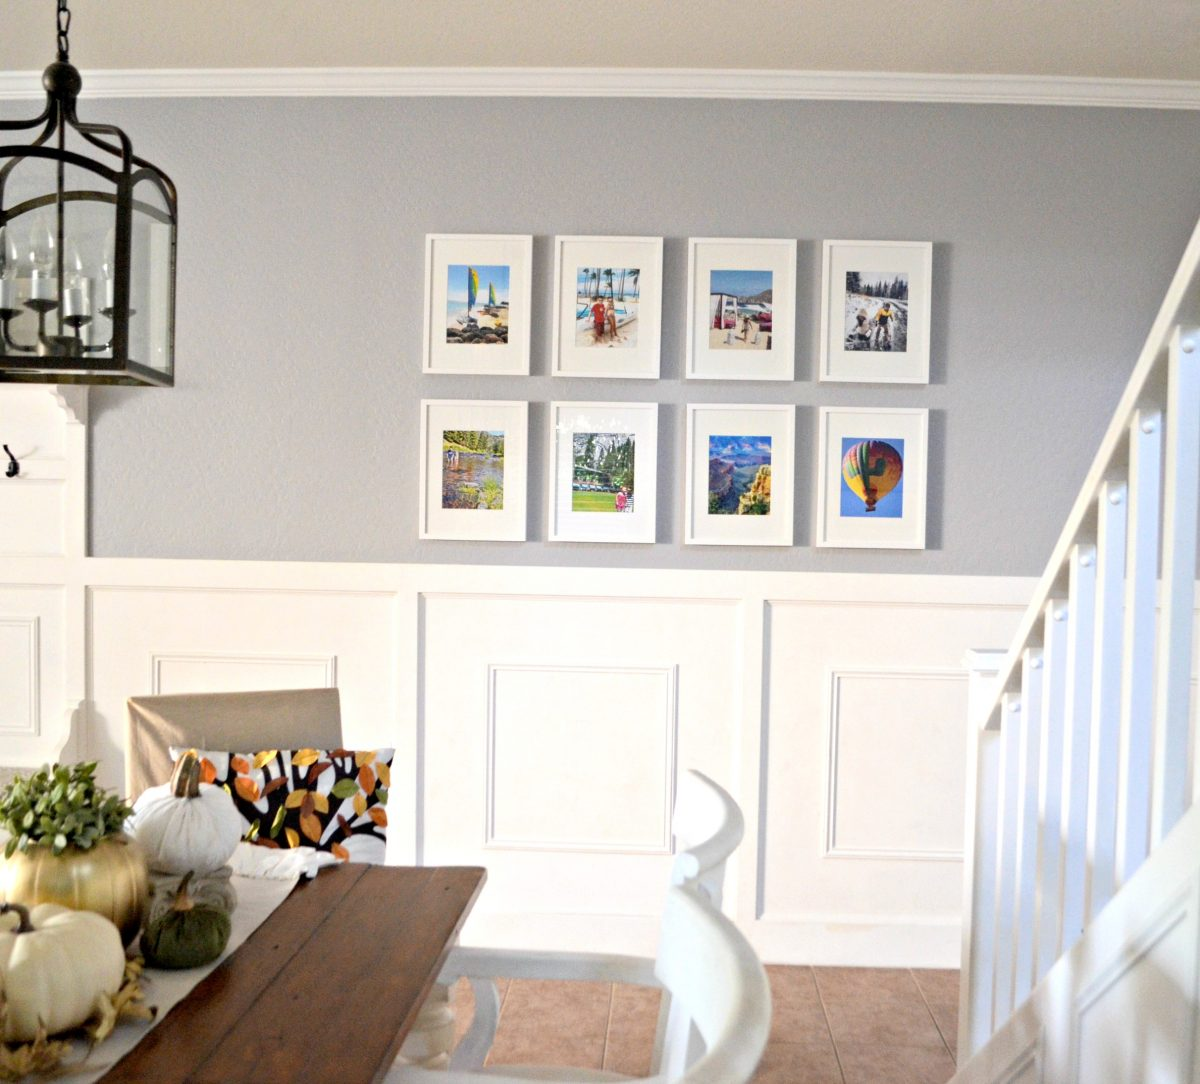 a gallery wall with 8 framed photos